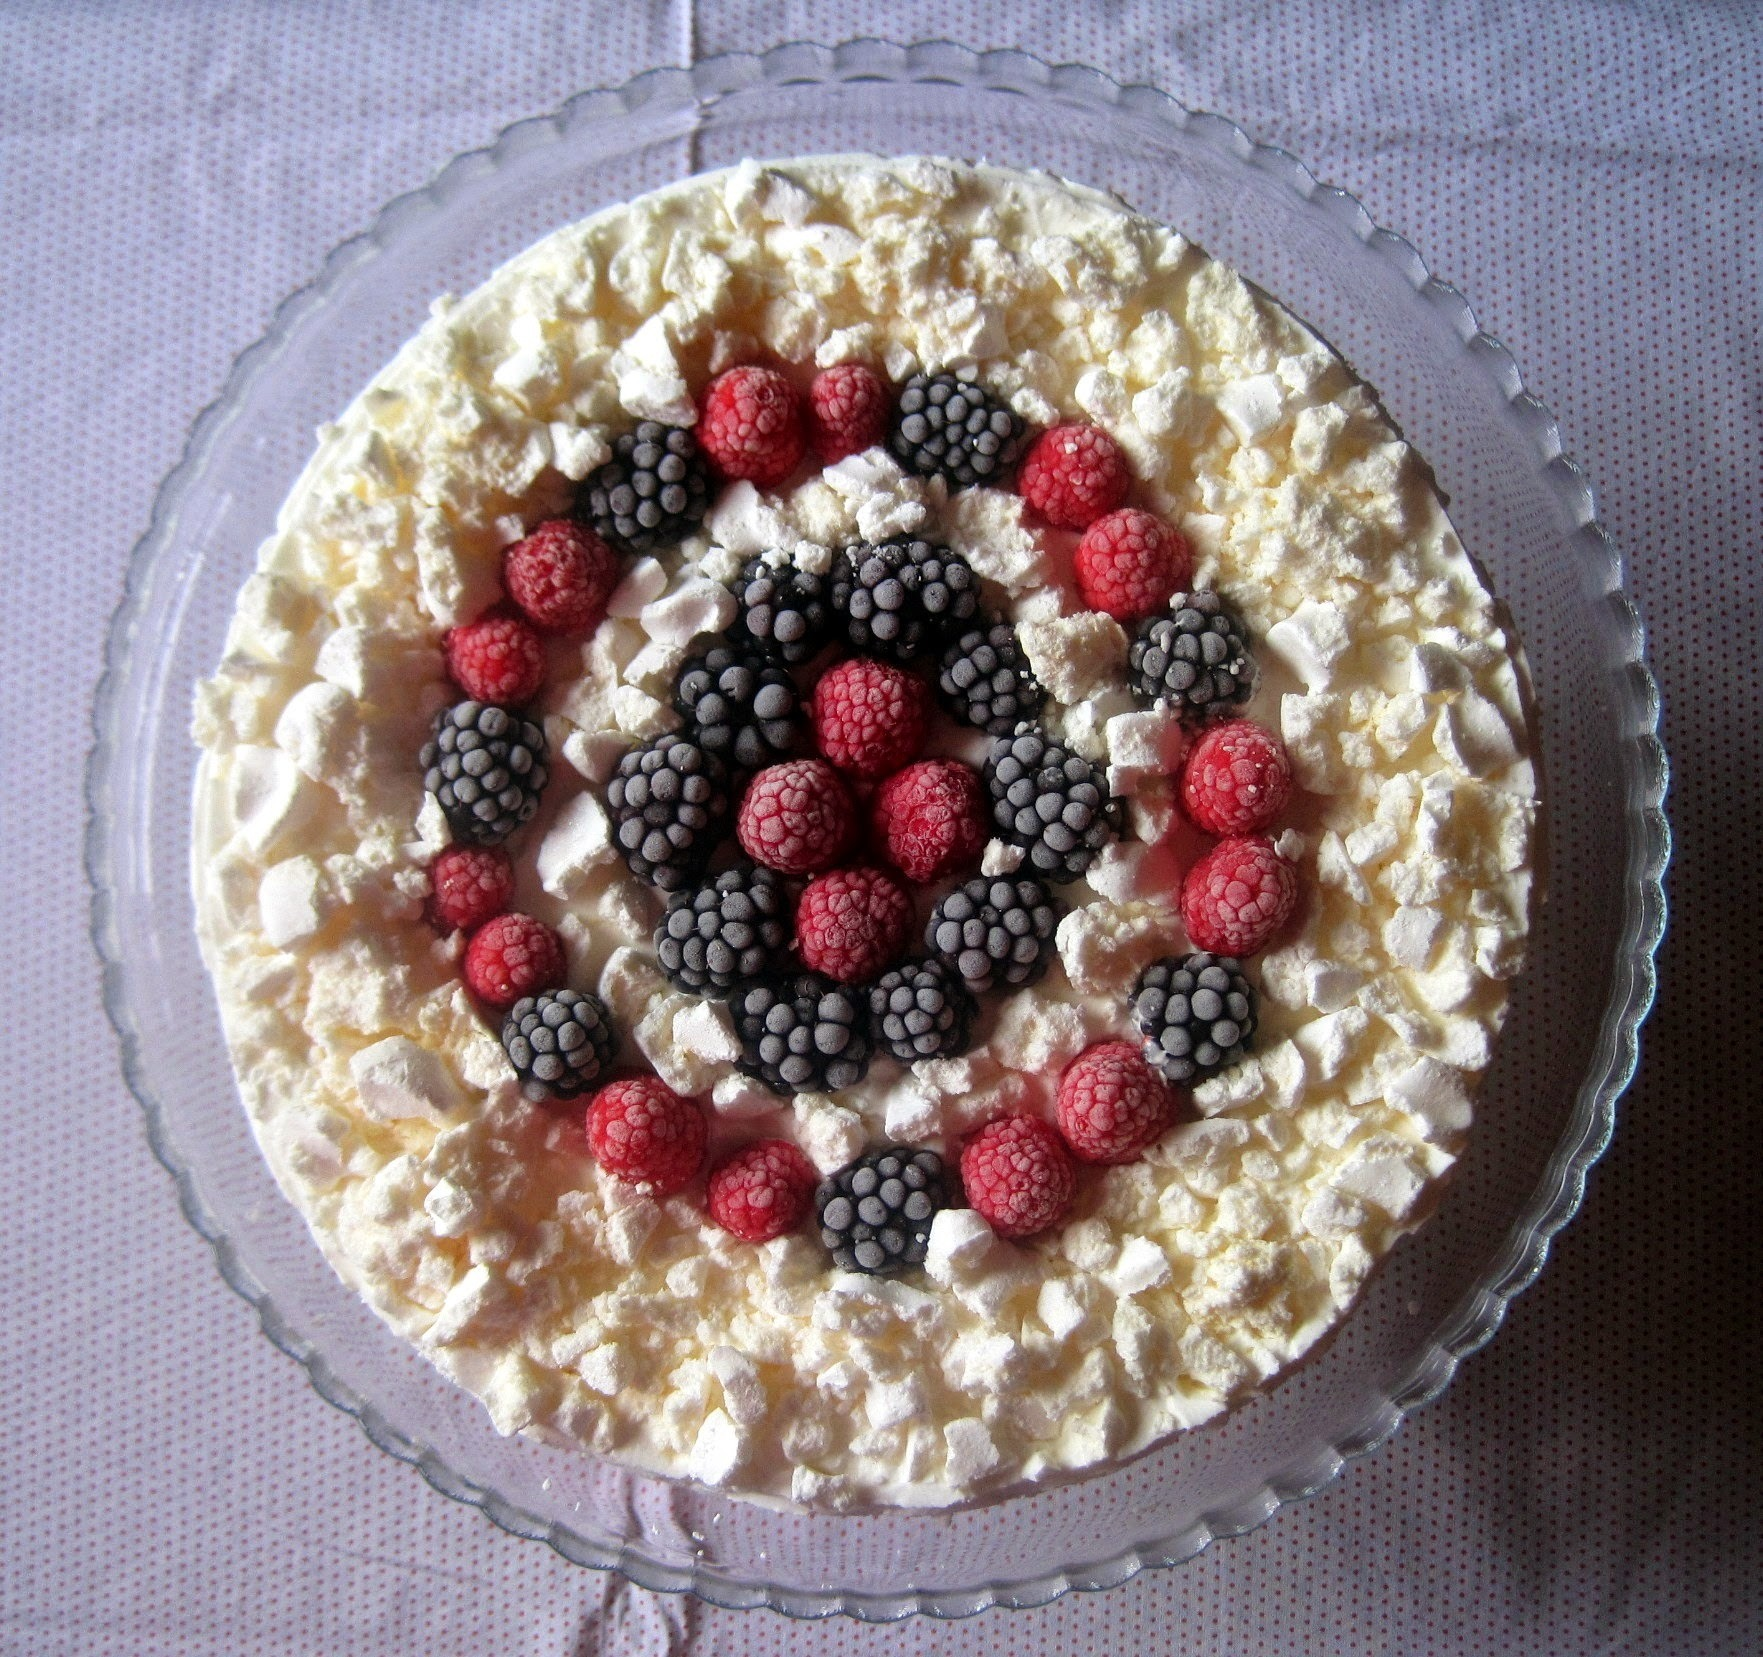 Torta Meringata alle more e lamponi - Meringue cake with blueberries and raspberries